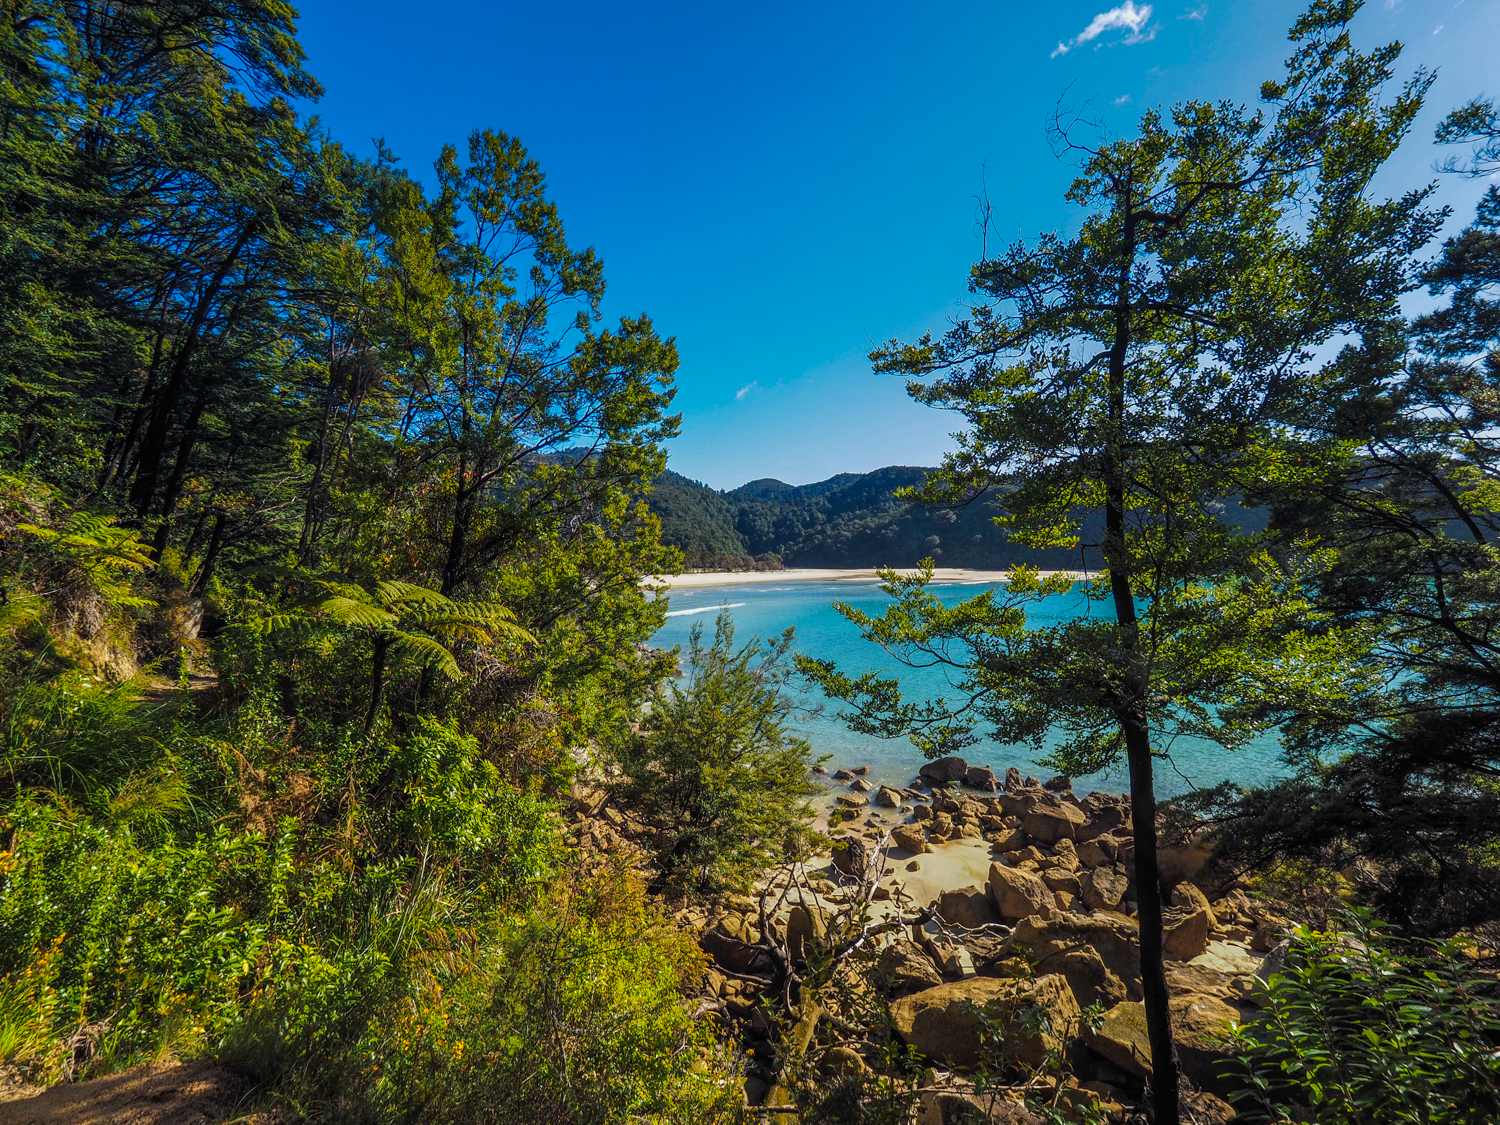 Looking back to Bark Bay (Medlands Beach) in Abel Tasman National Park, Nelson, NZ. 1/320sec, f/6.3 ISO 200